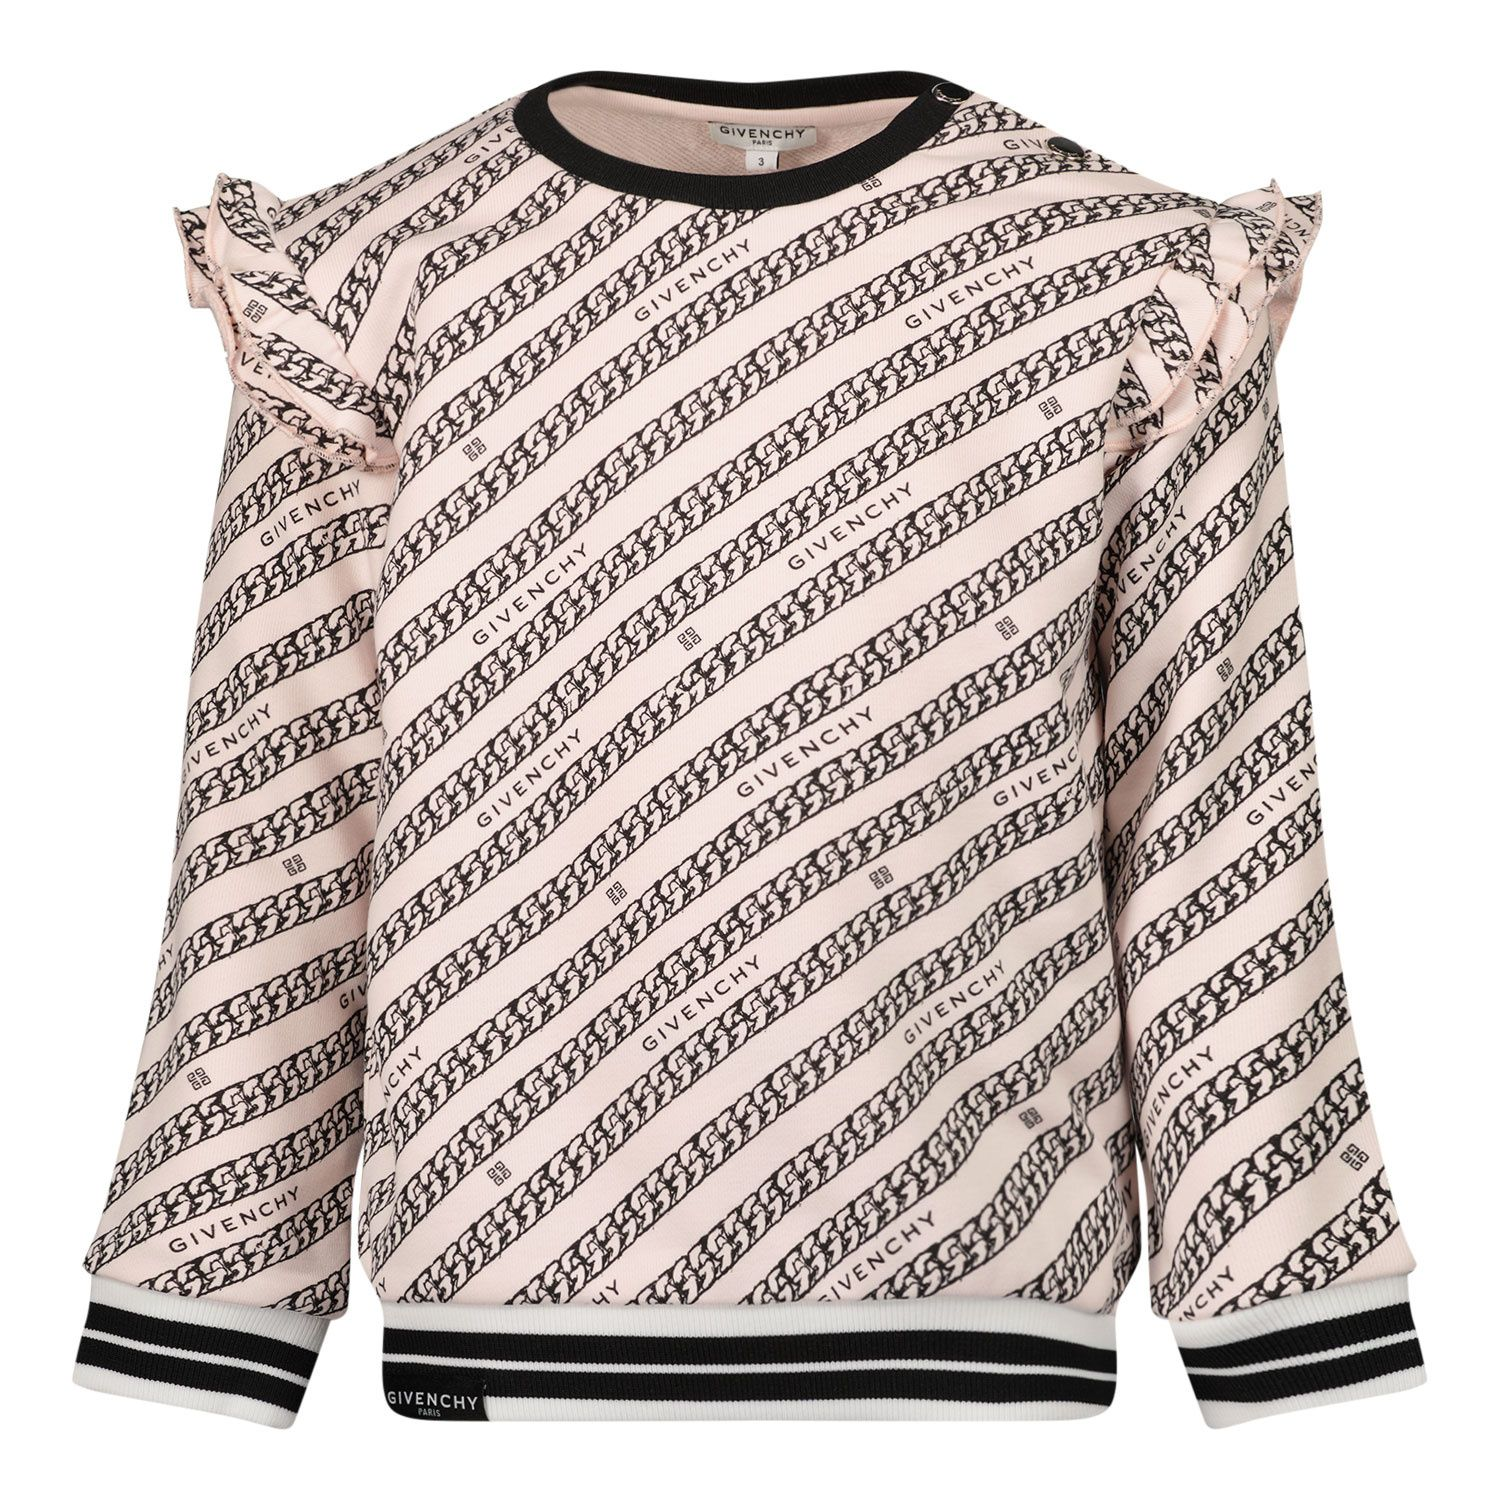 Picture of Givenchy H05179 baby sweater light pink